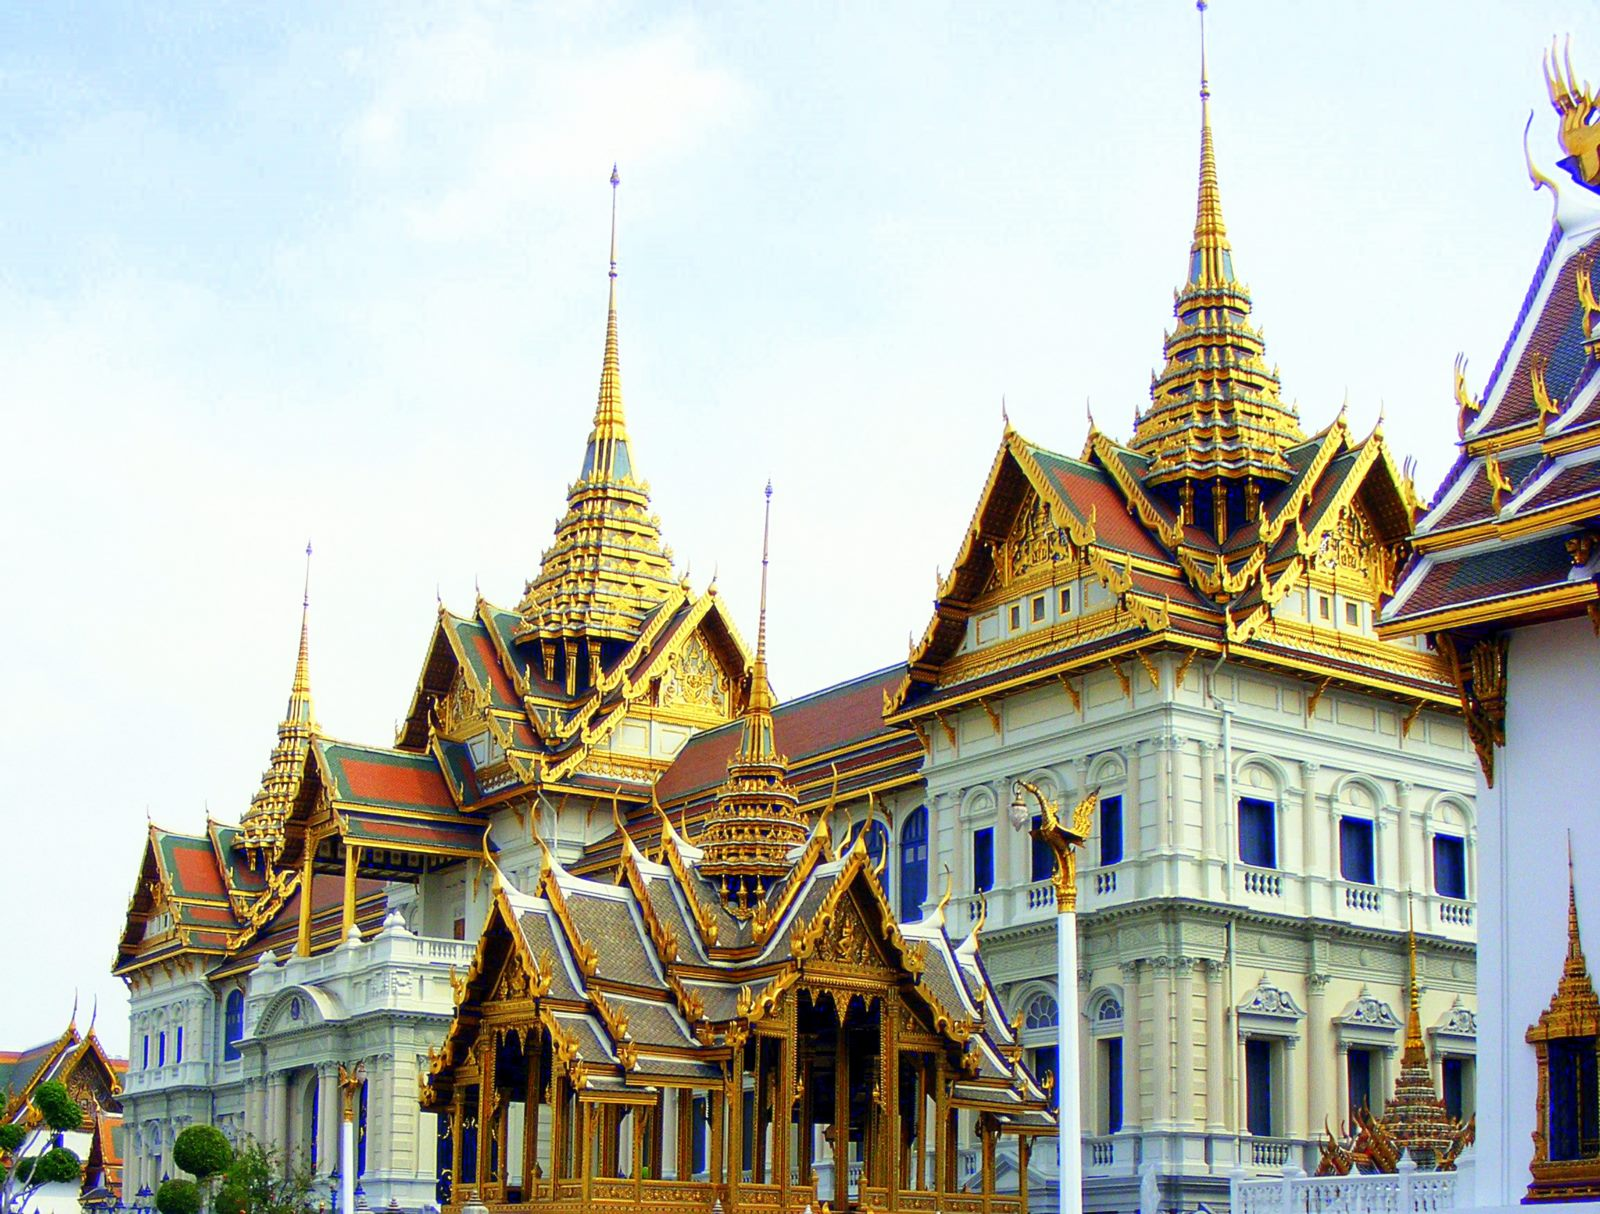 The_Grand_Palace_of_Thailand_2-1.jpg